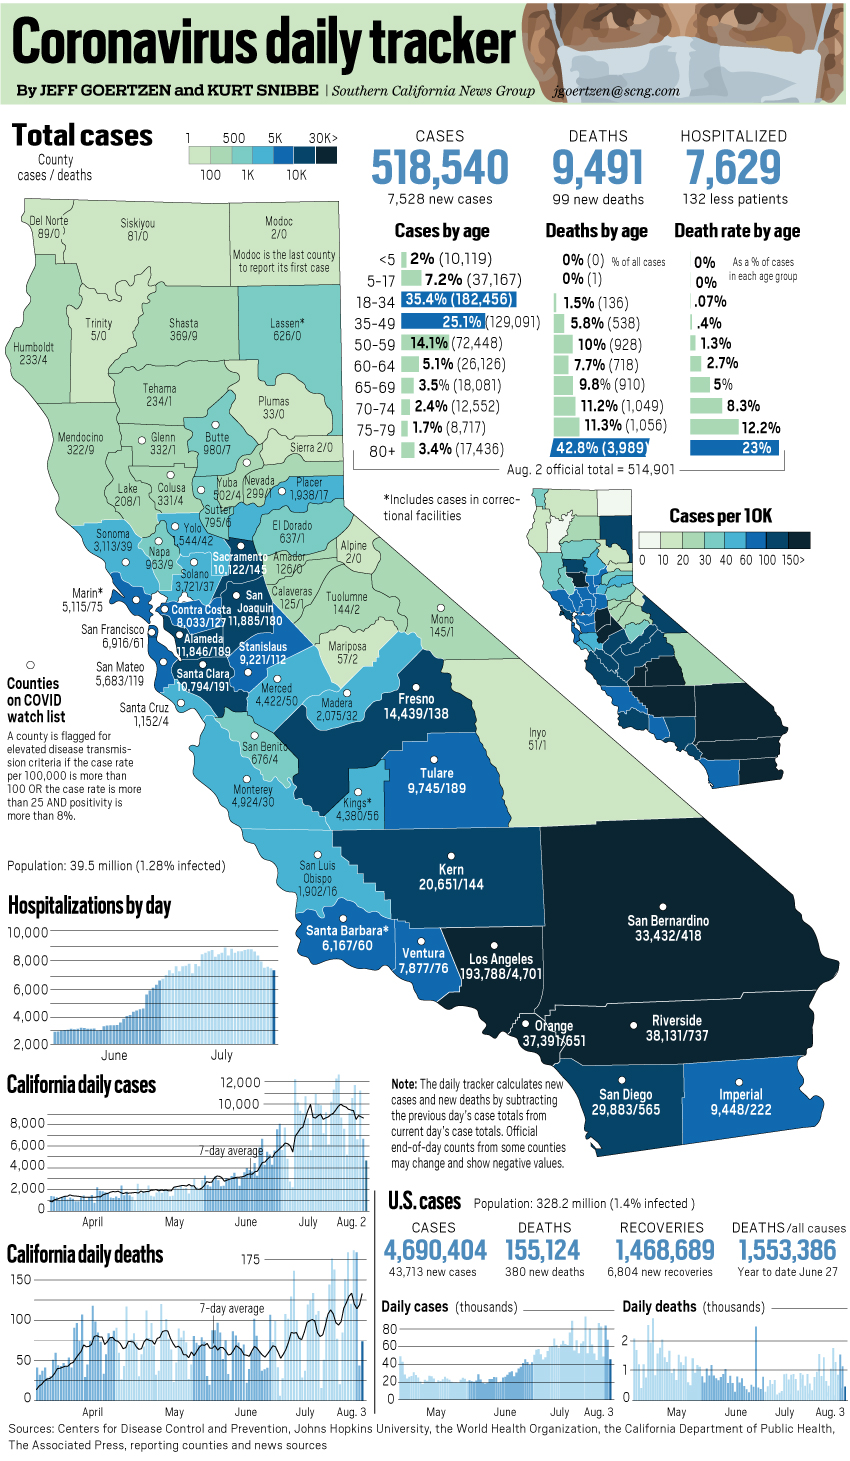 Coronavirus state tracker: Los Angeles County accounts for 50% of cumulative deaths on Aug. 3